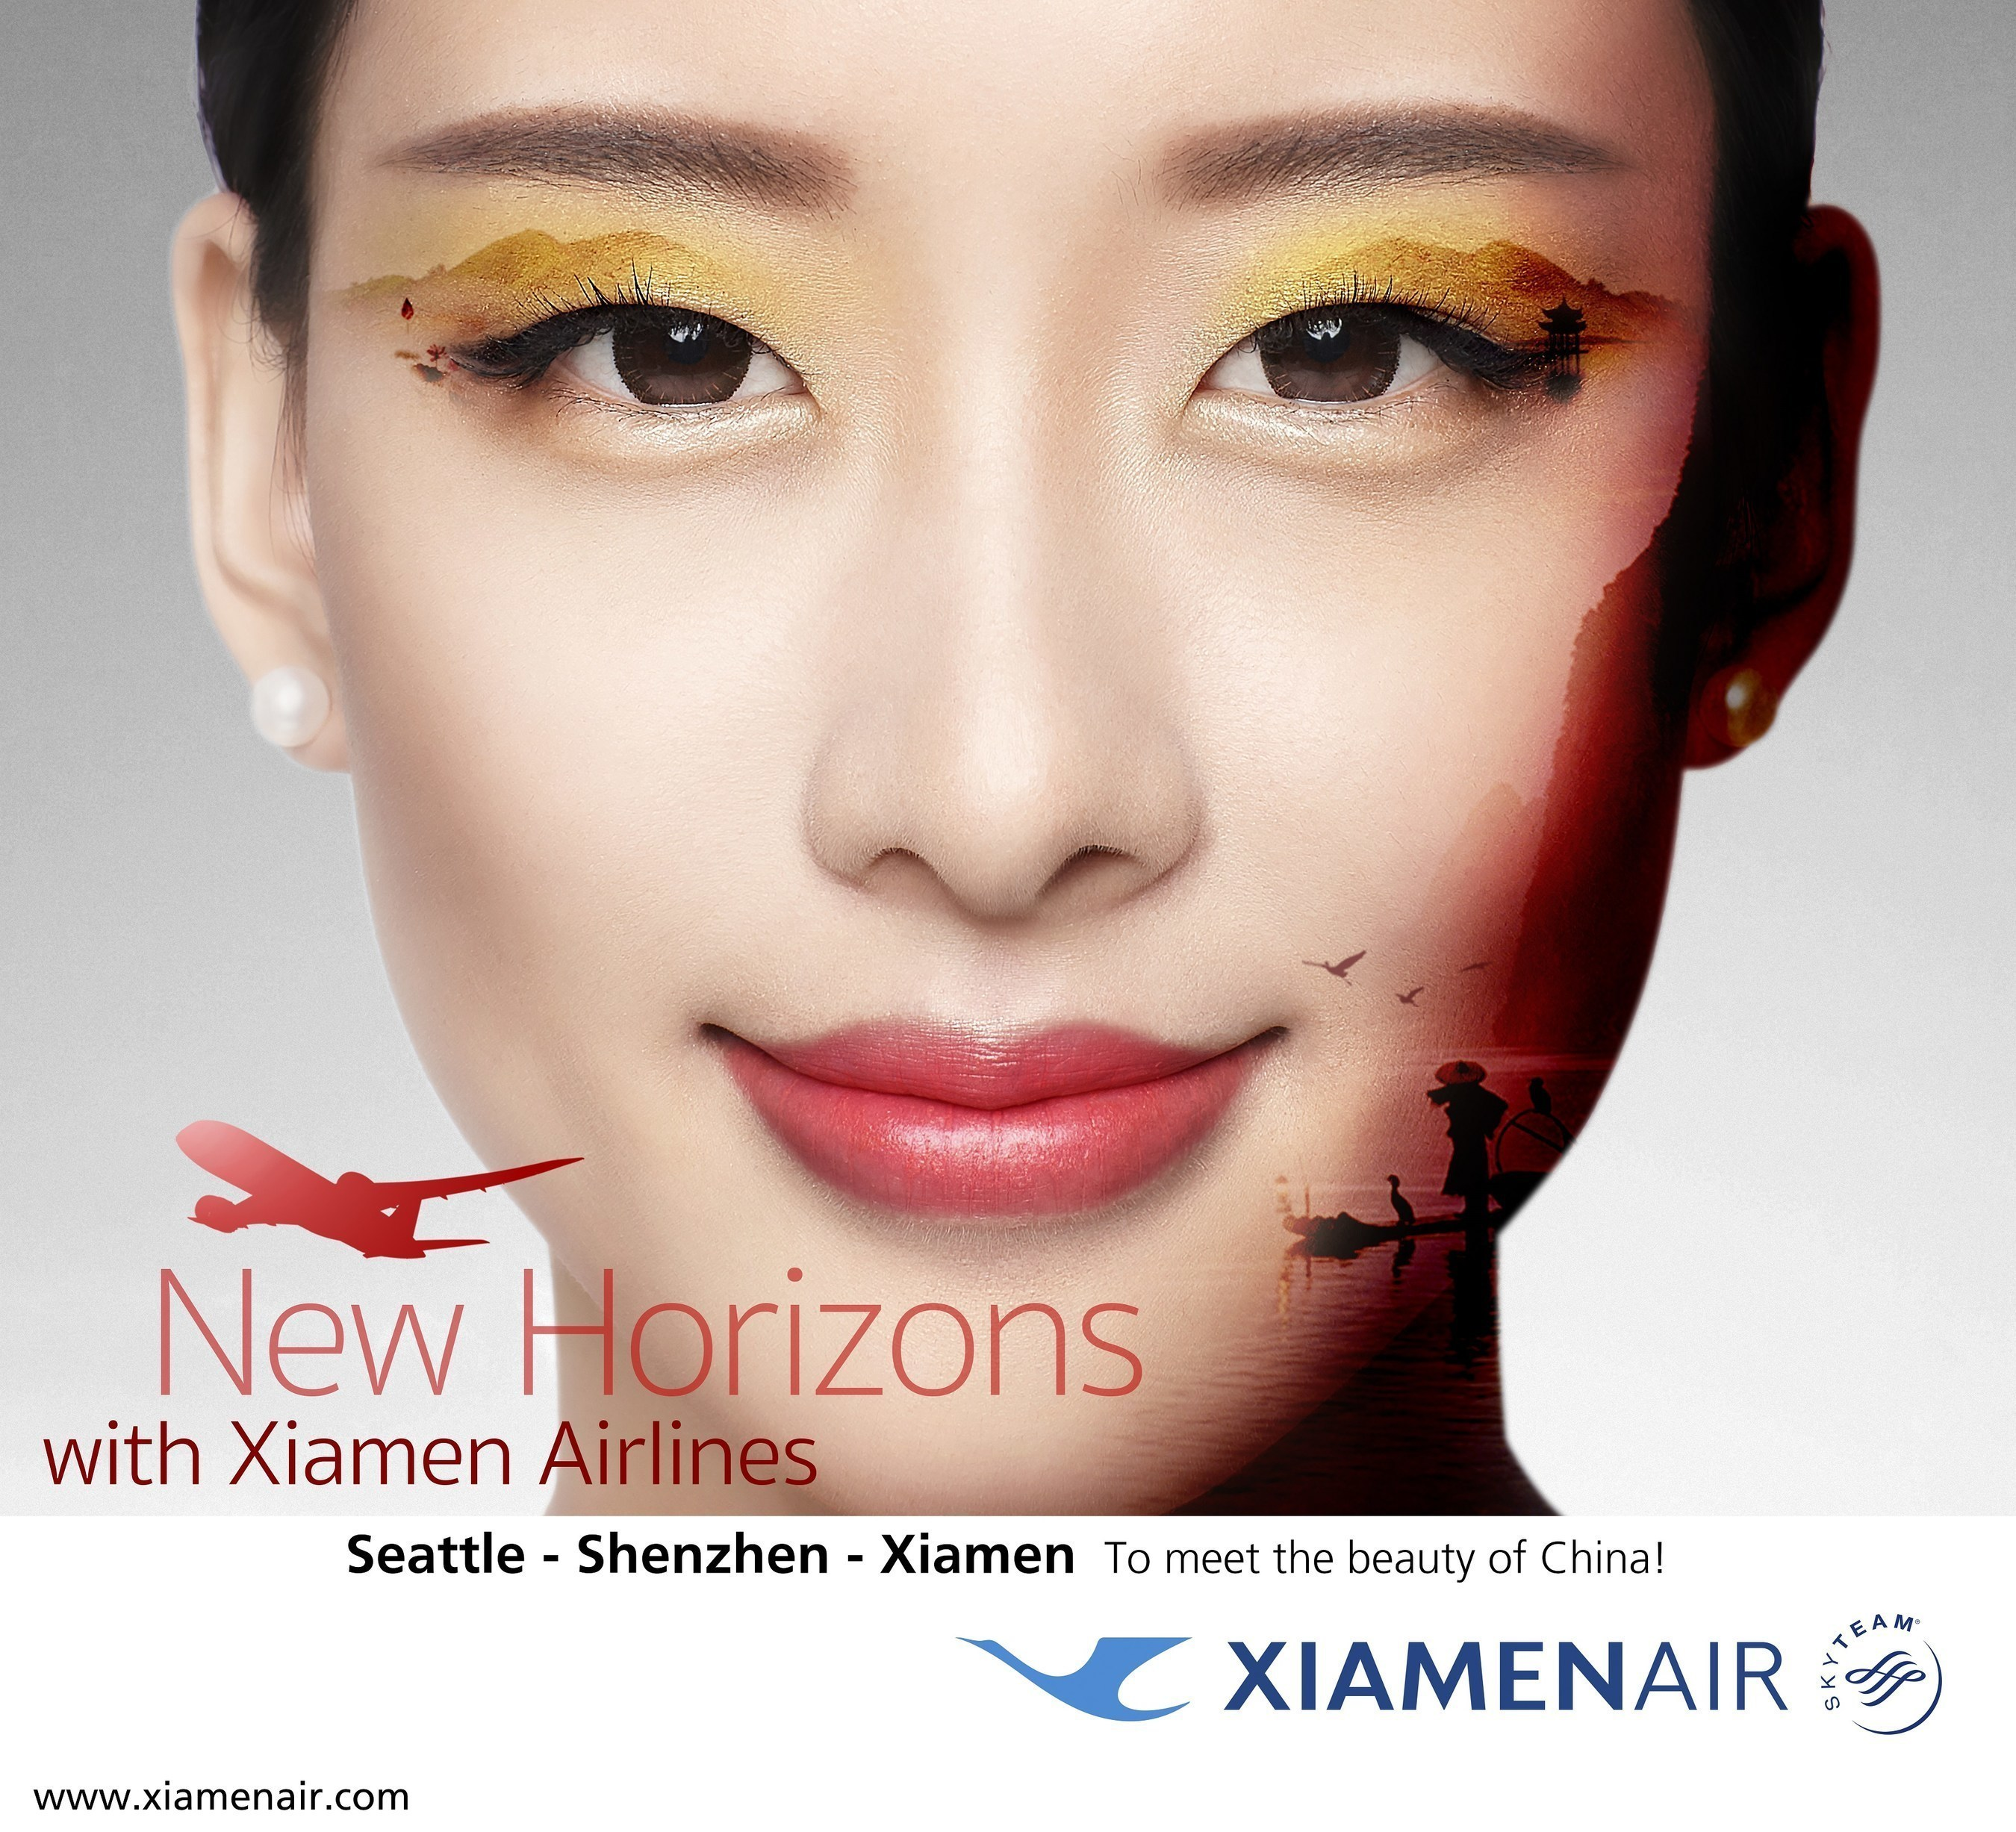 Xiamen Airlines launches its first flight service to the U.S.: Xiamen-Shenzhen-Seattle